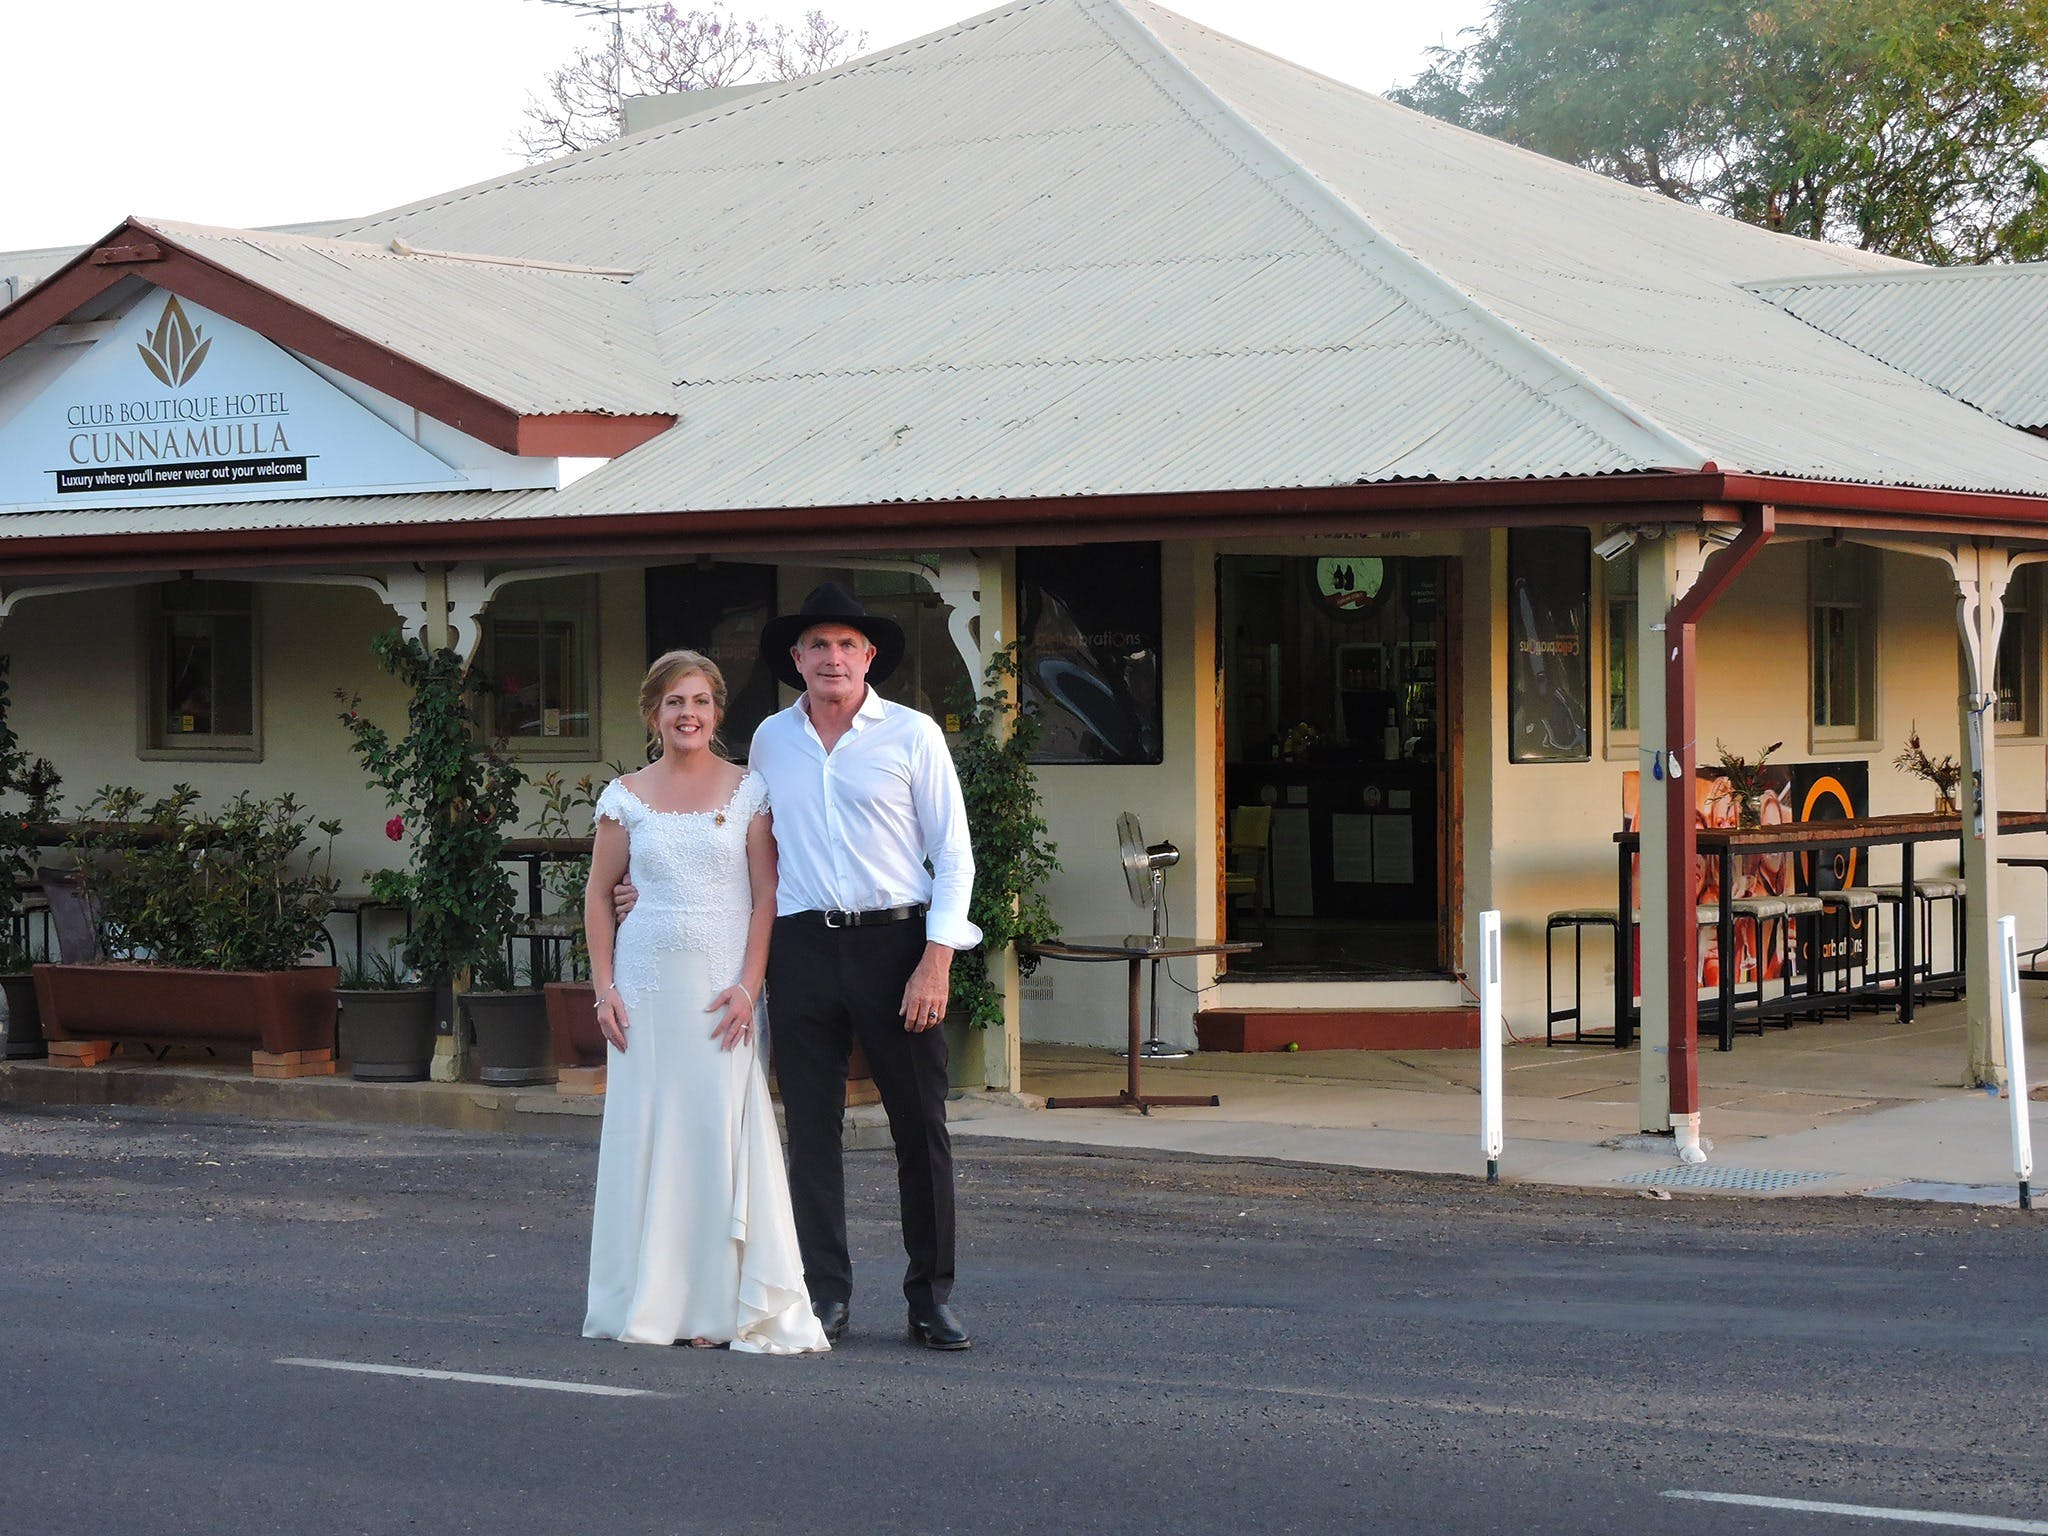 Club Boutique Hotel Cunnamulla - Tourism Adelaide